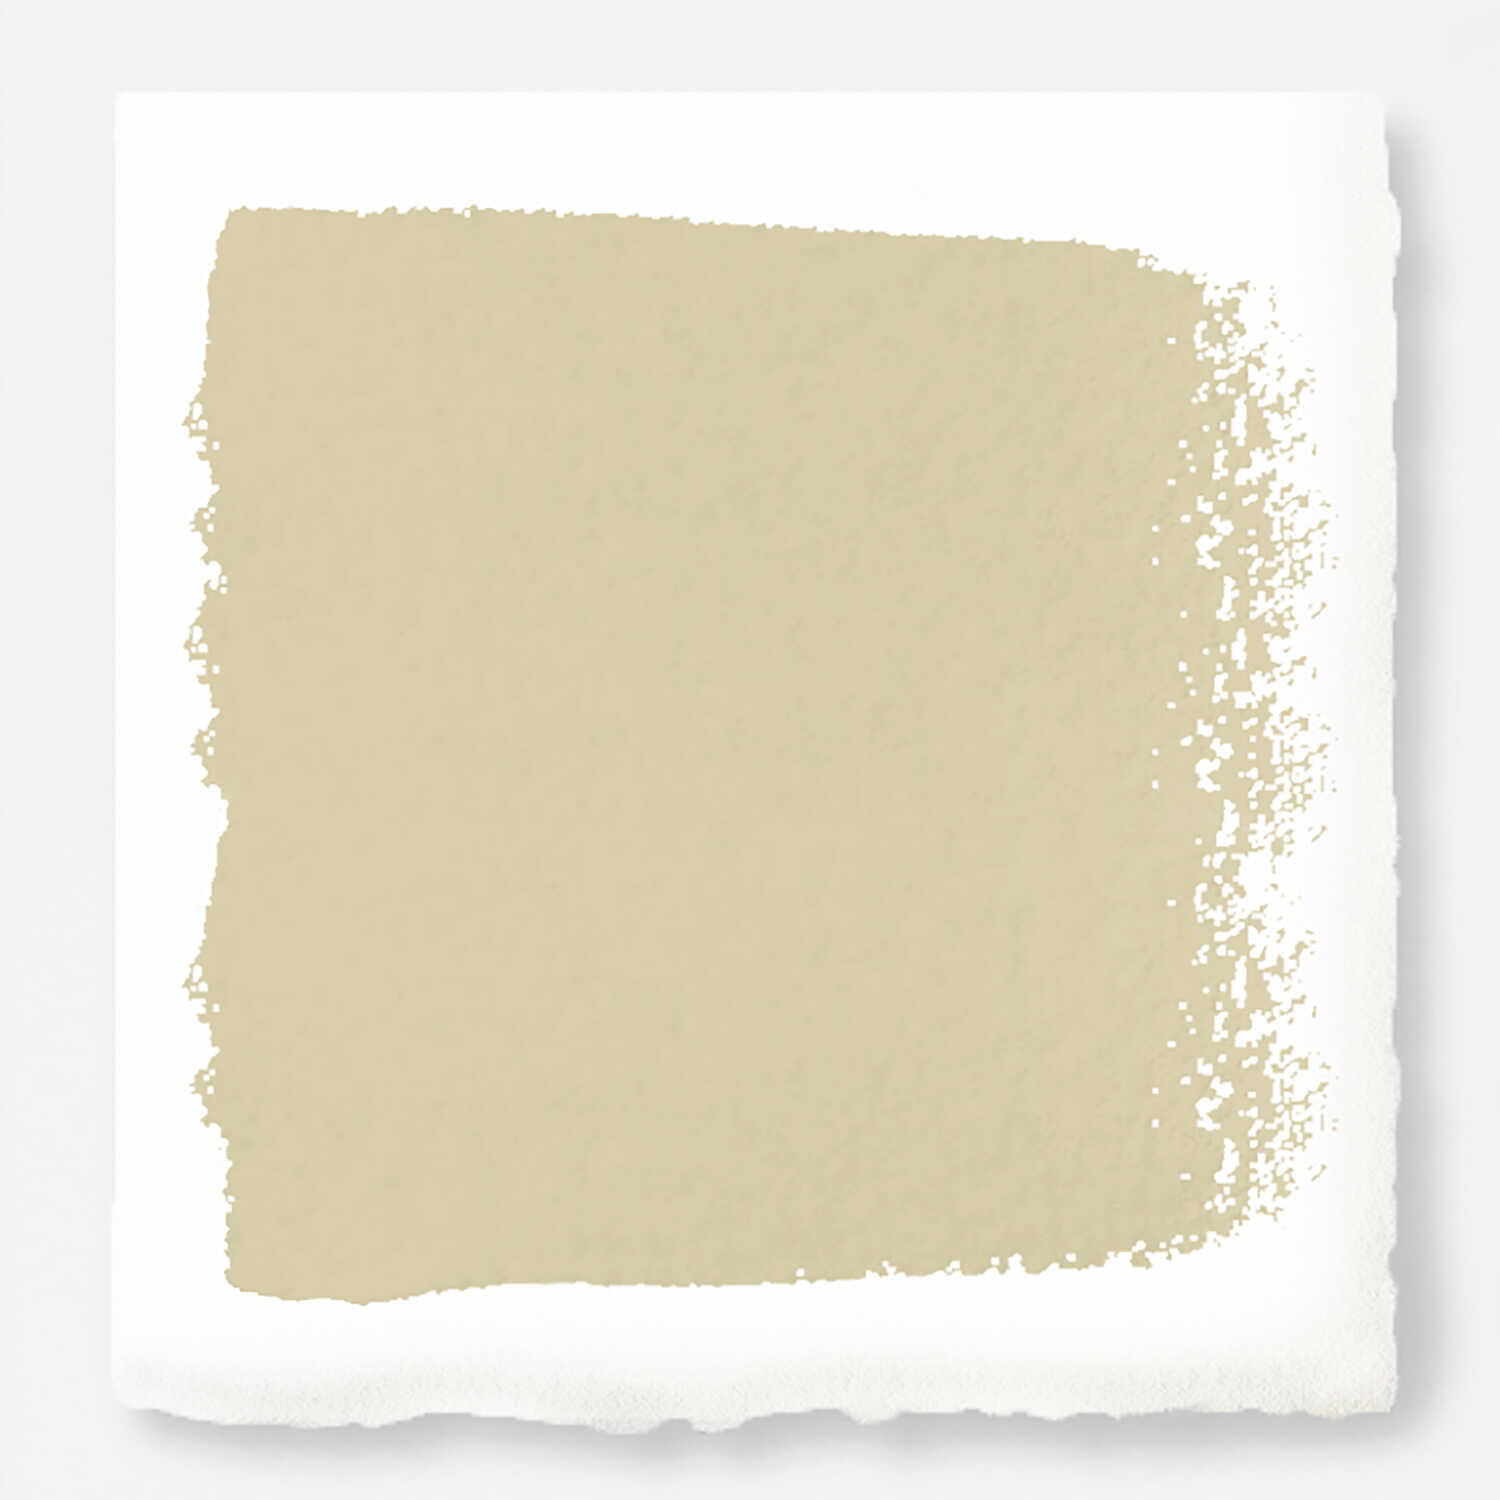 Magnolia Home  Semi-Gloss  Tapestry Thread  Exterior Paint and Primer  1 gal.